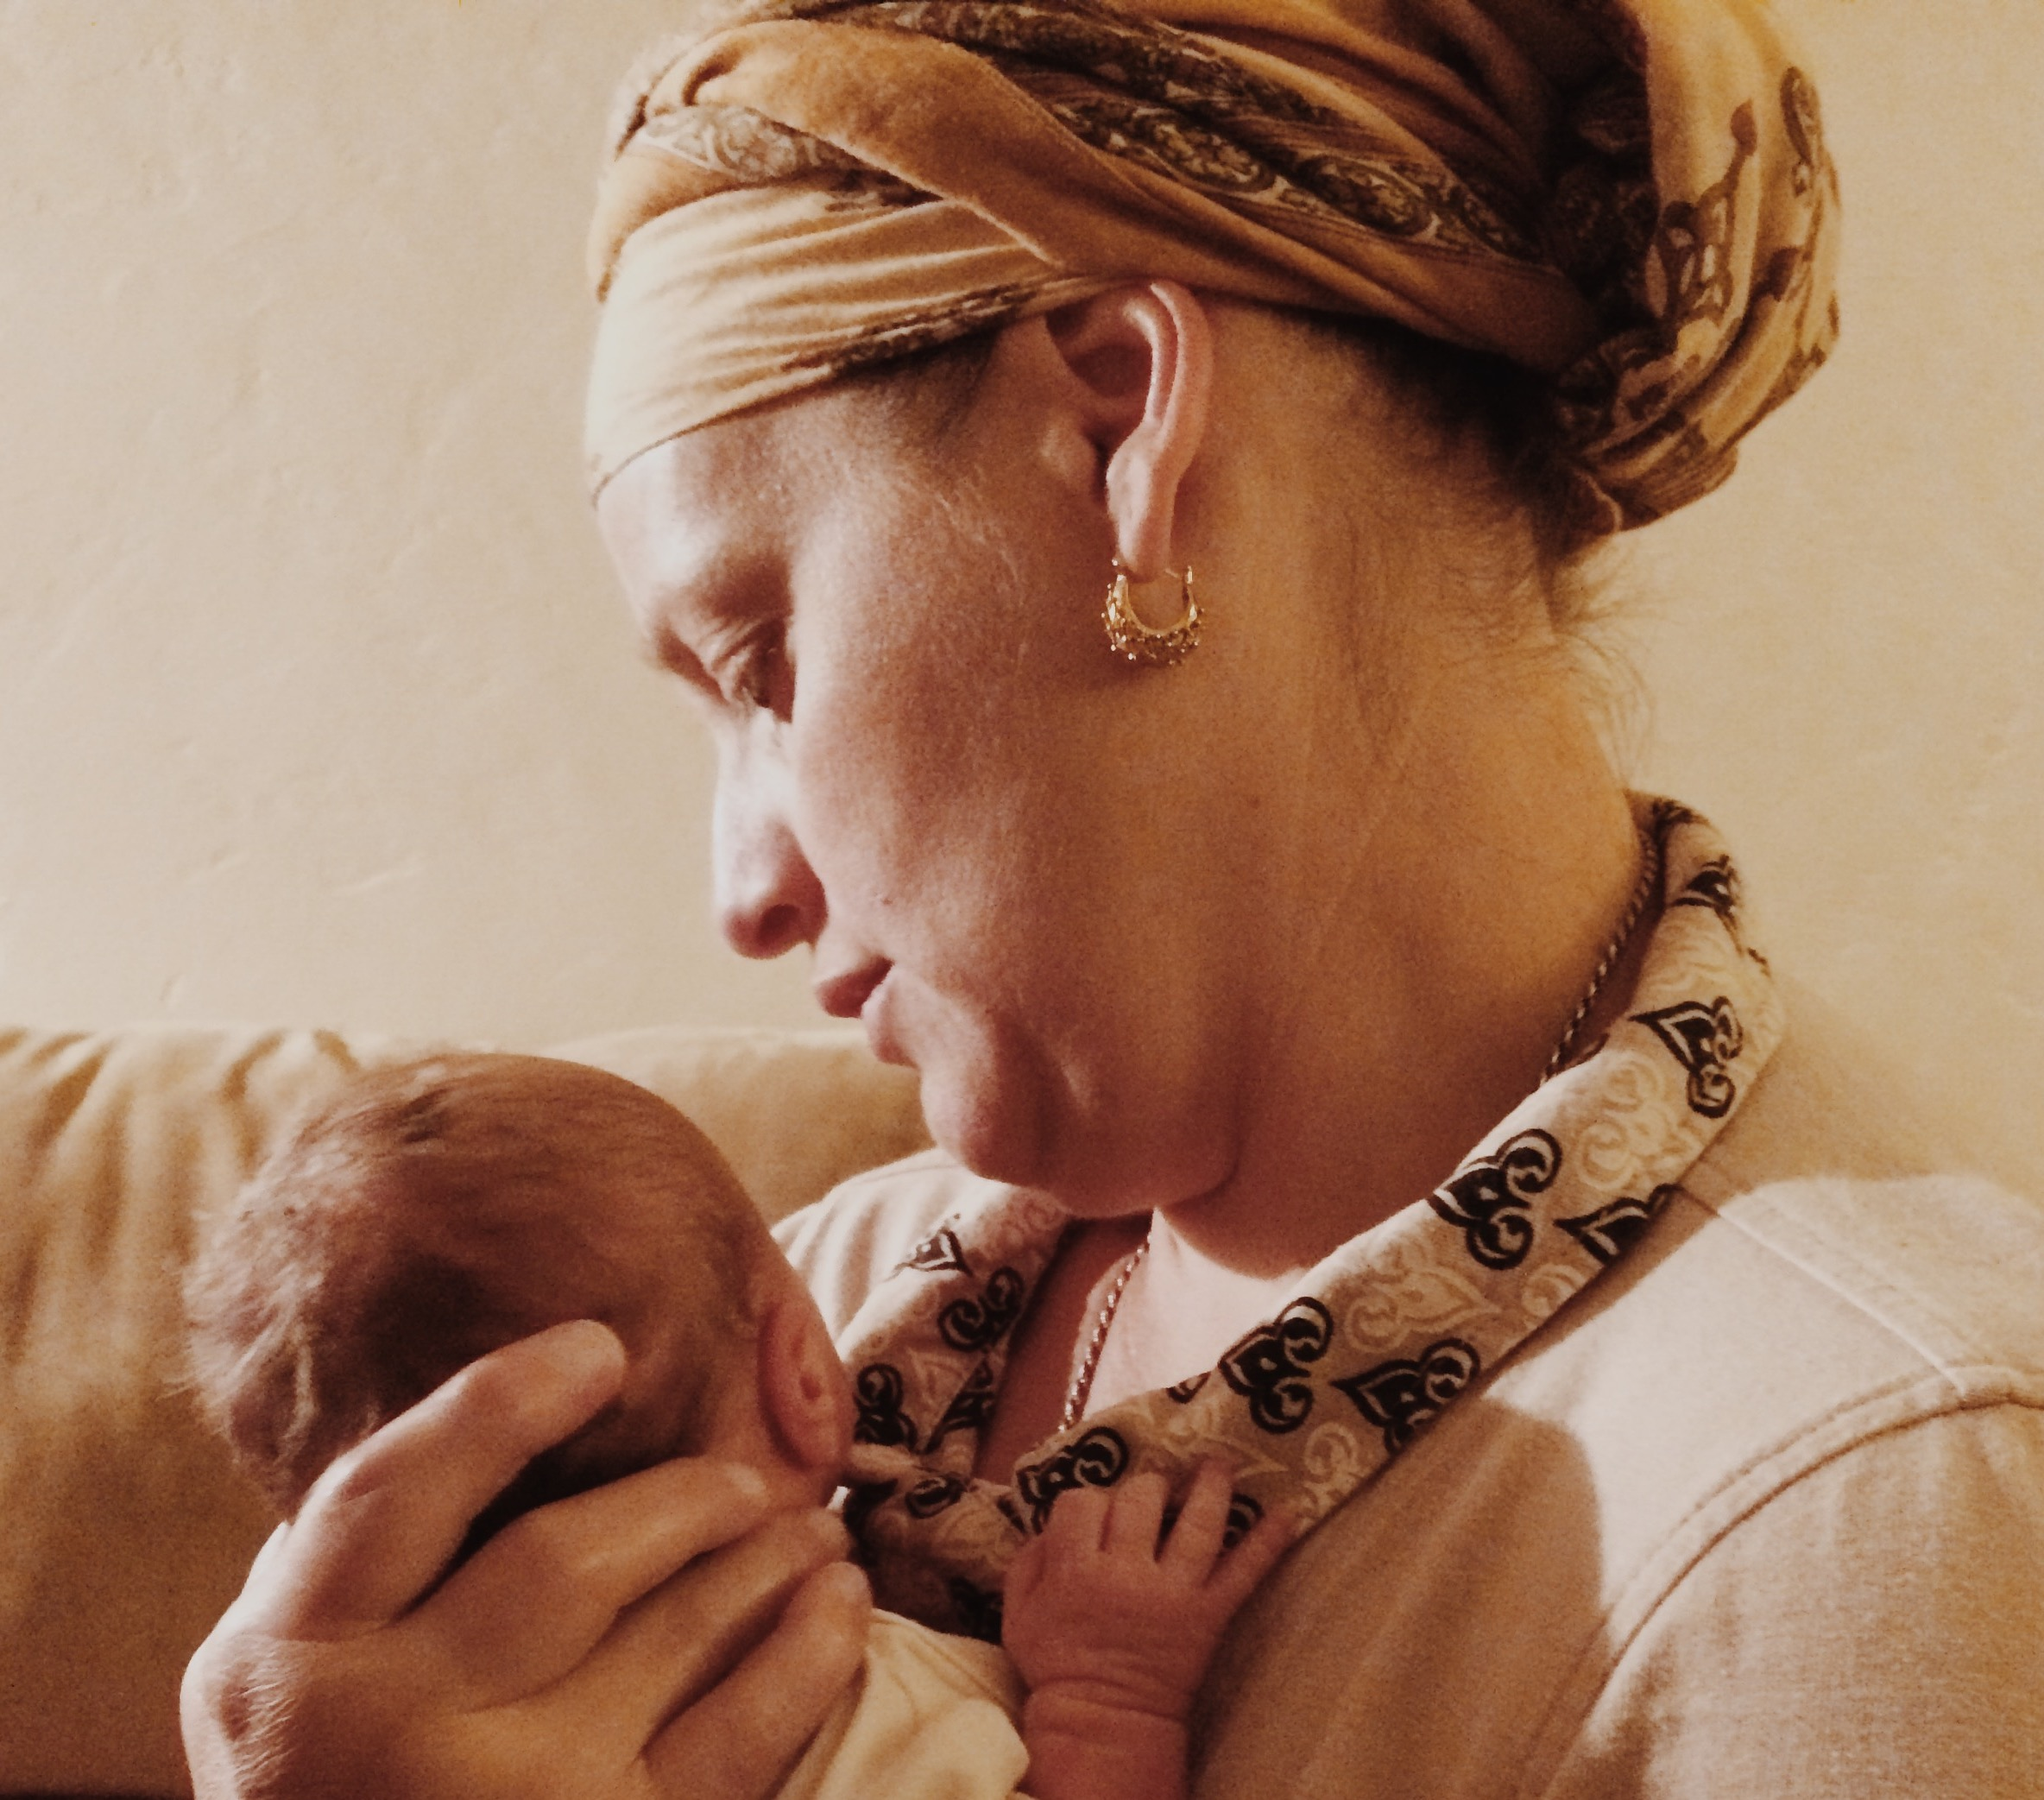 Birth is a sacred event in a family's life. My goal is to give loving care in this pivotal time of your life.